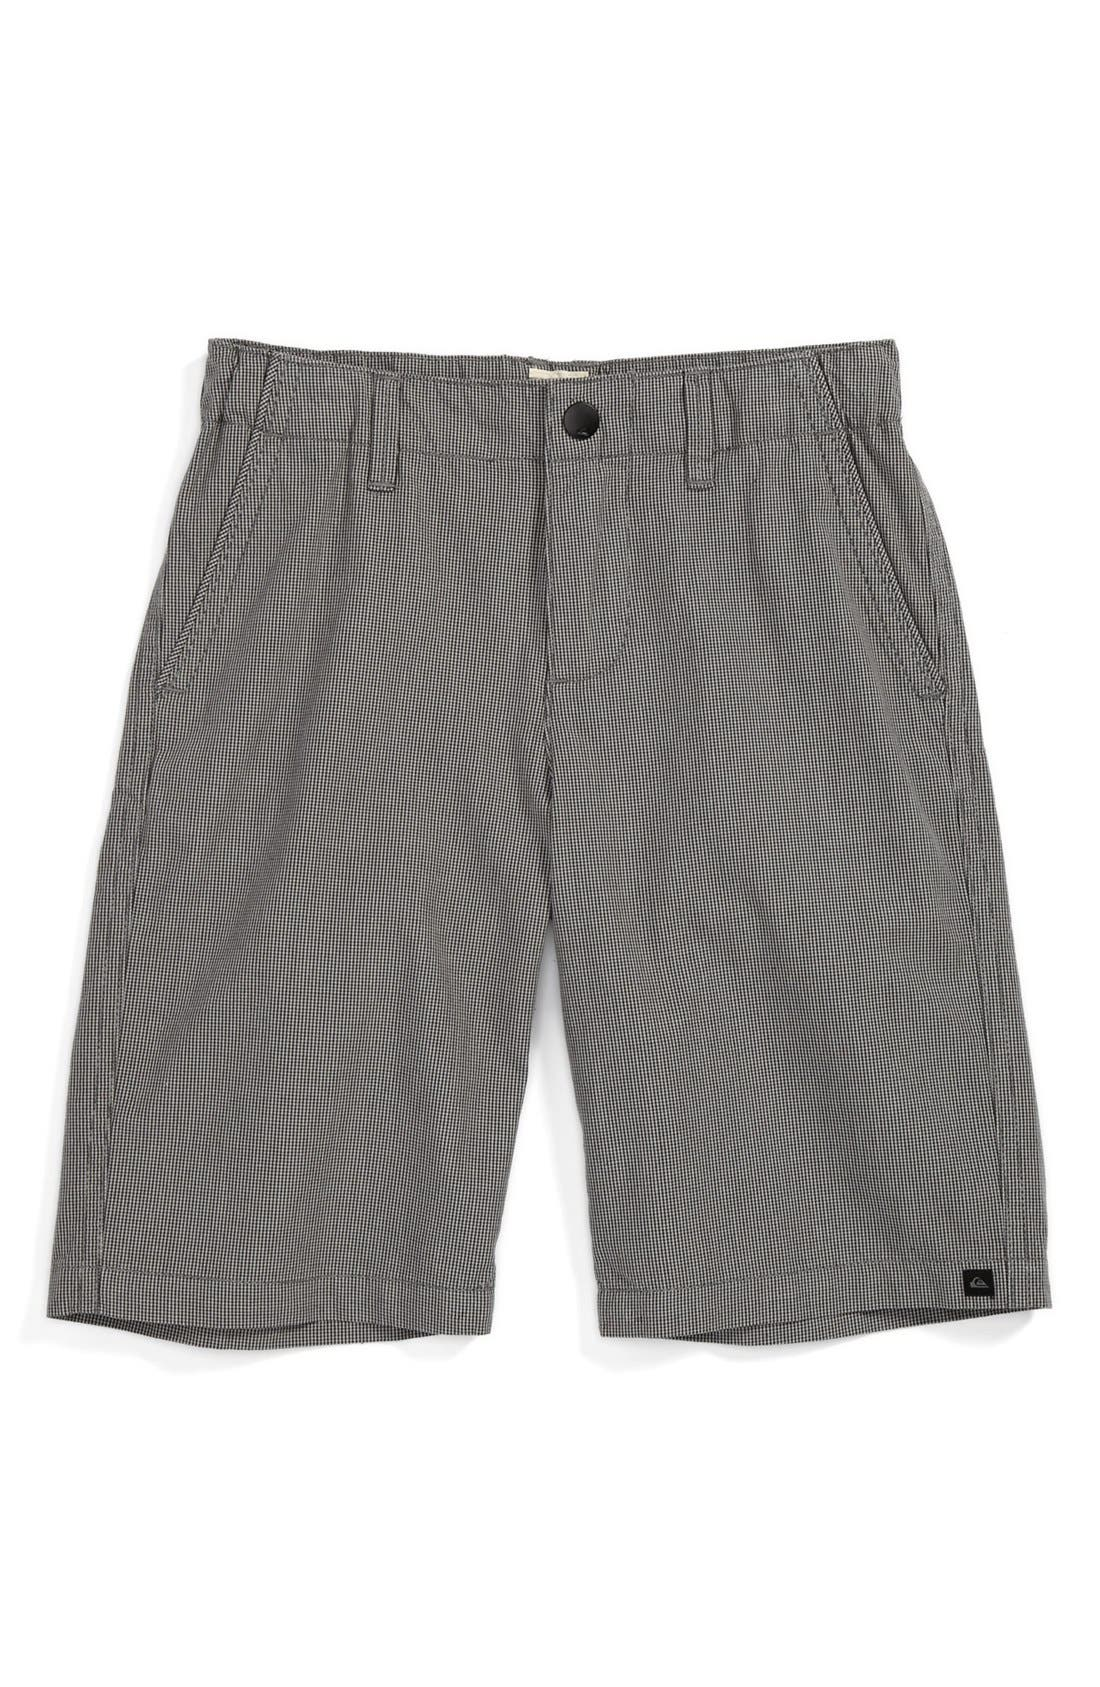 Alternate Image 1 Selected - Quiksilver 'Nugget' Shorts (Little Boys)